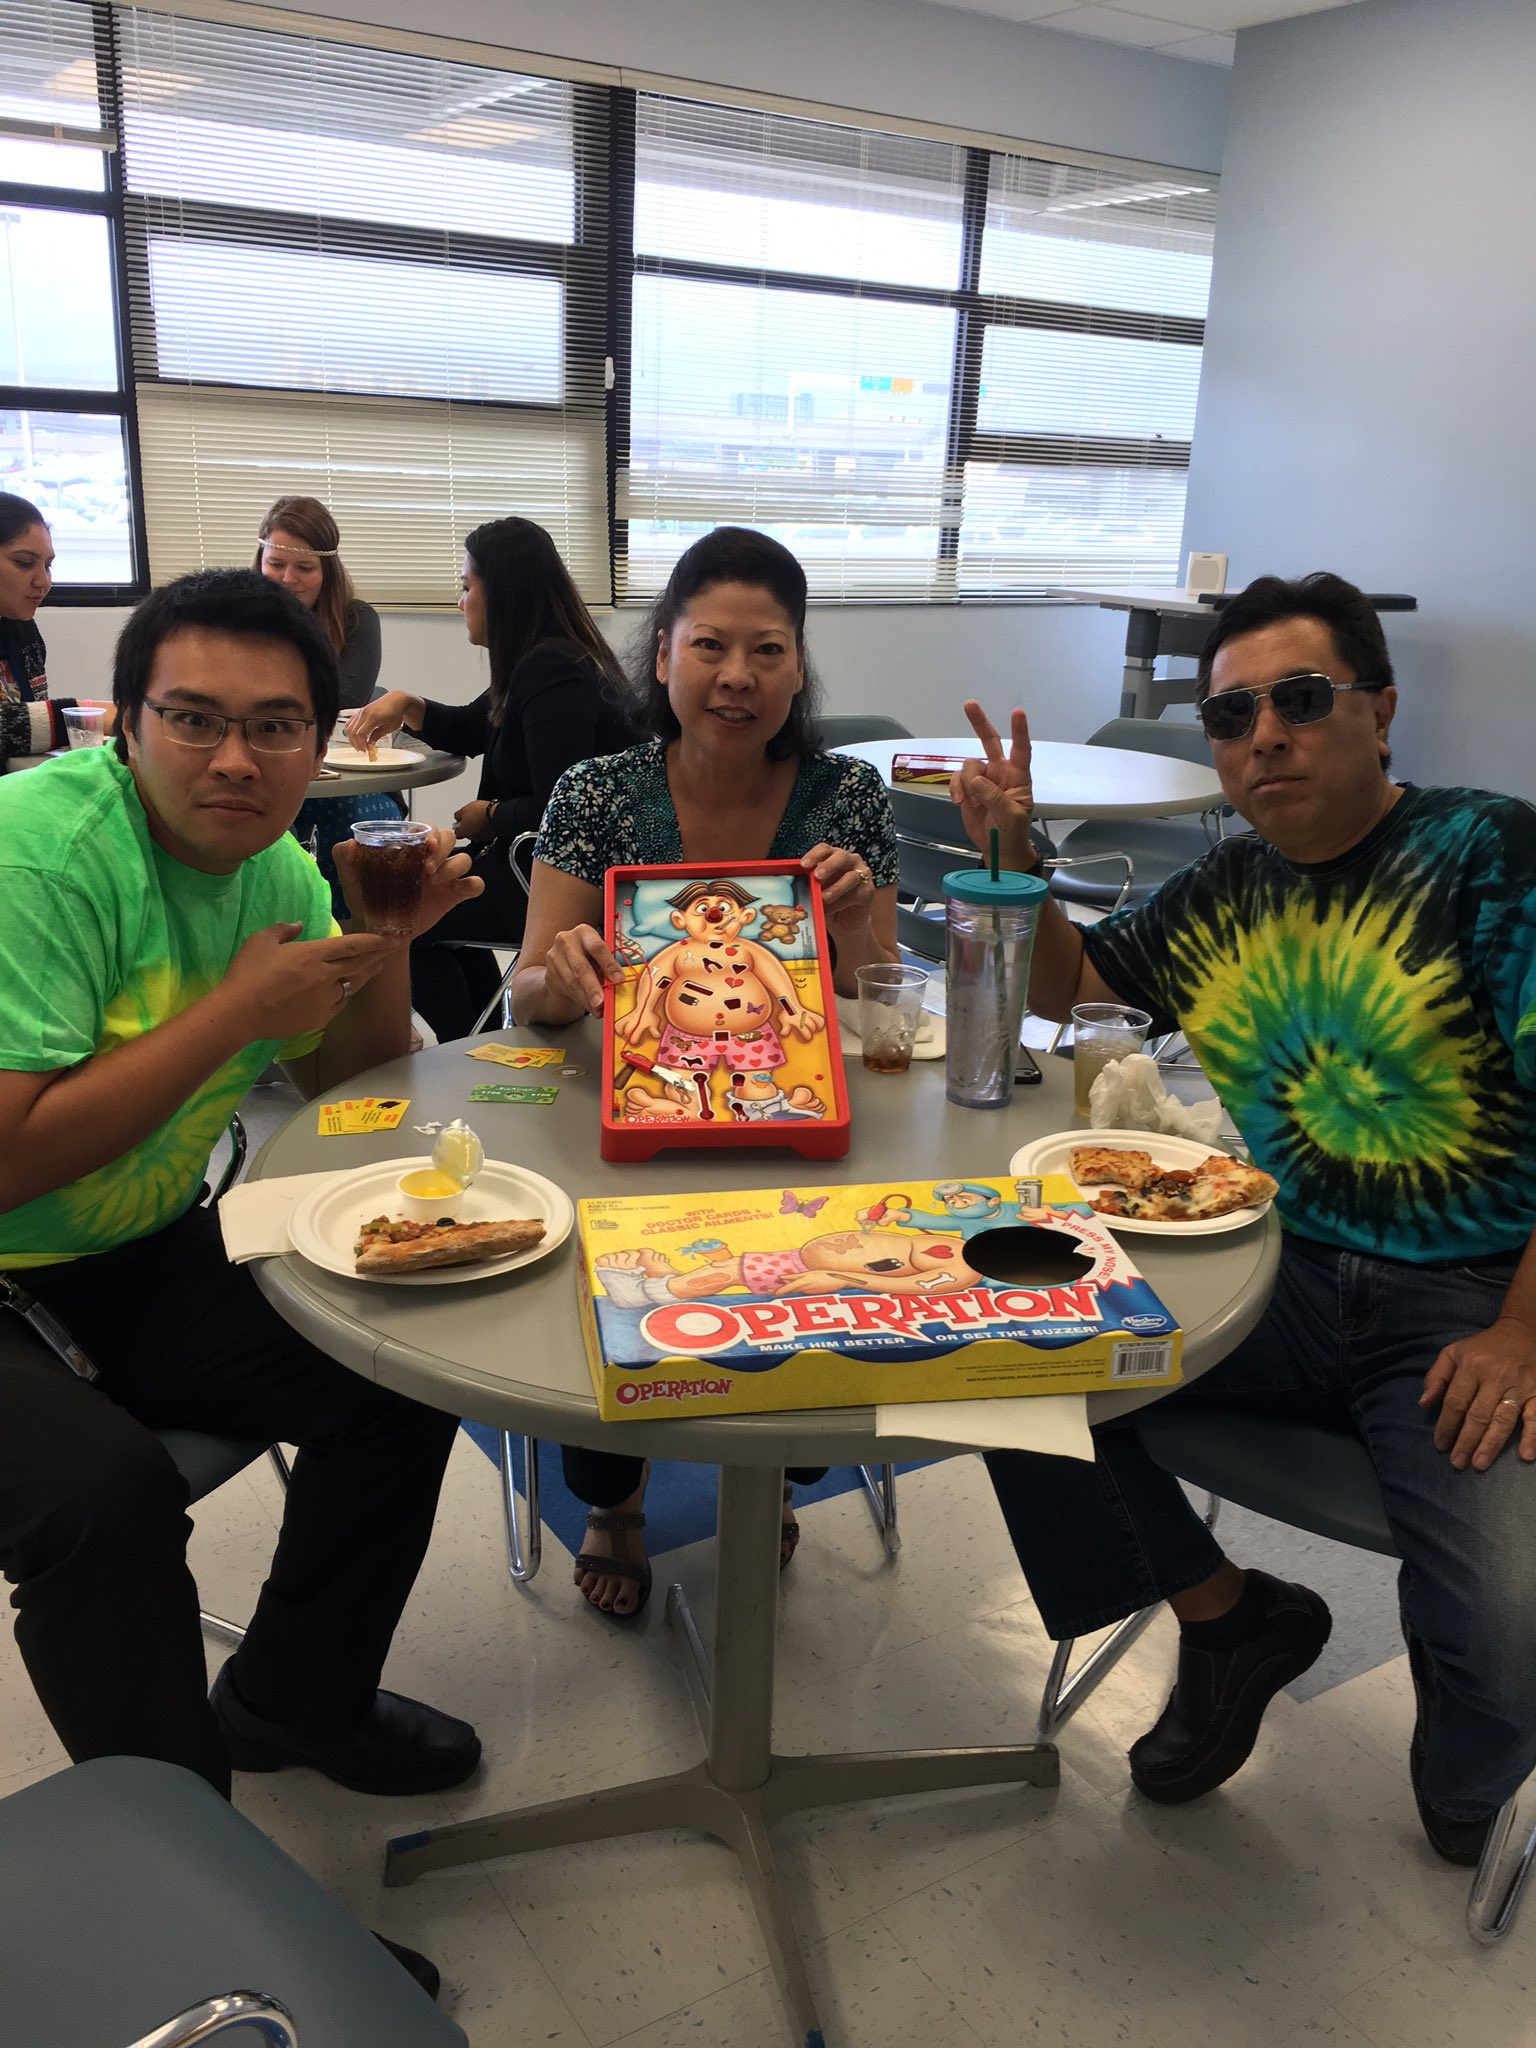 1960s pizza 🍕 & board game party. Celebrating when it all began #ceridianhawaii50 https://t.co/NjsCt9RTUW